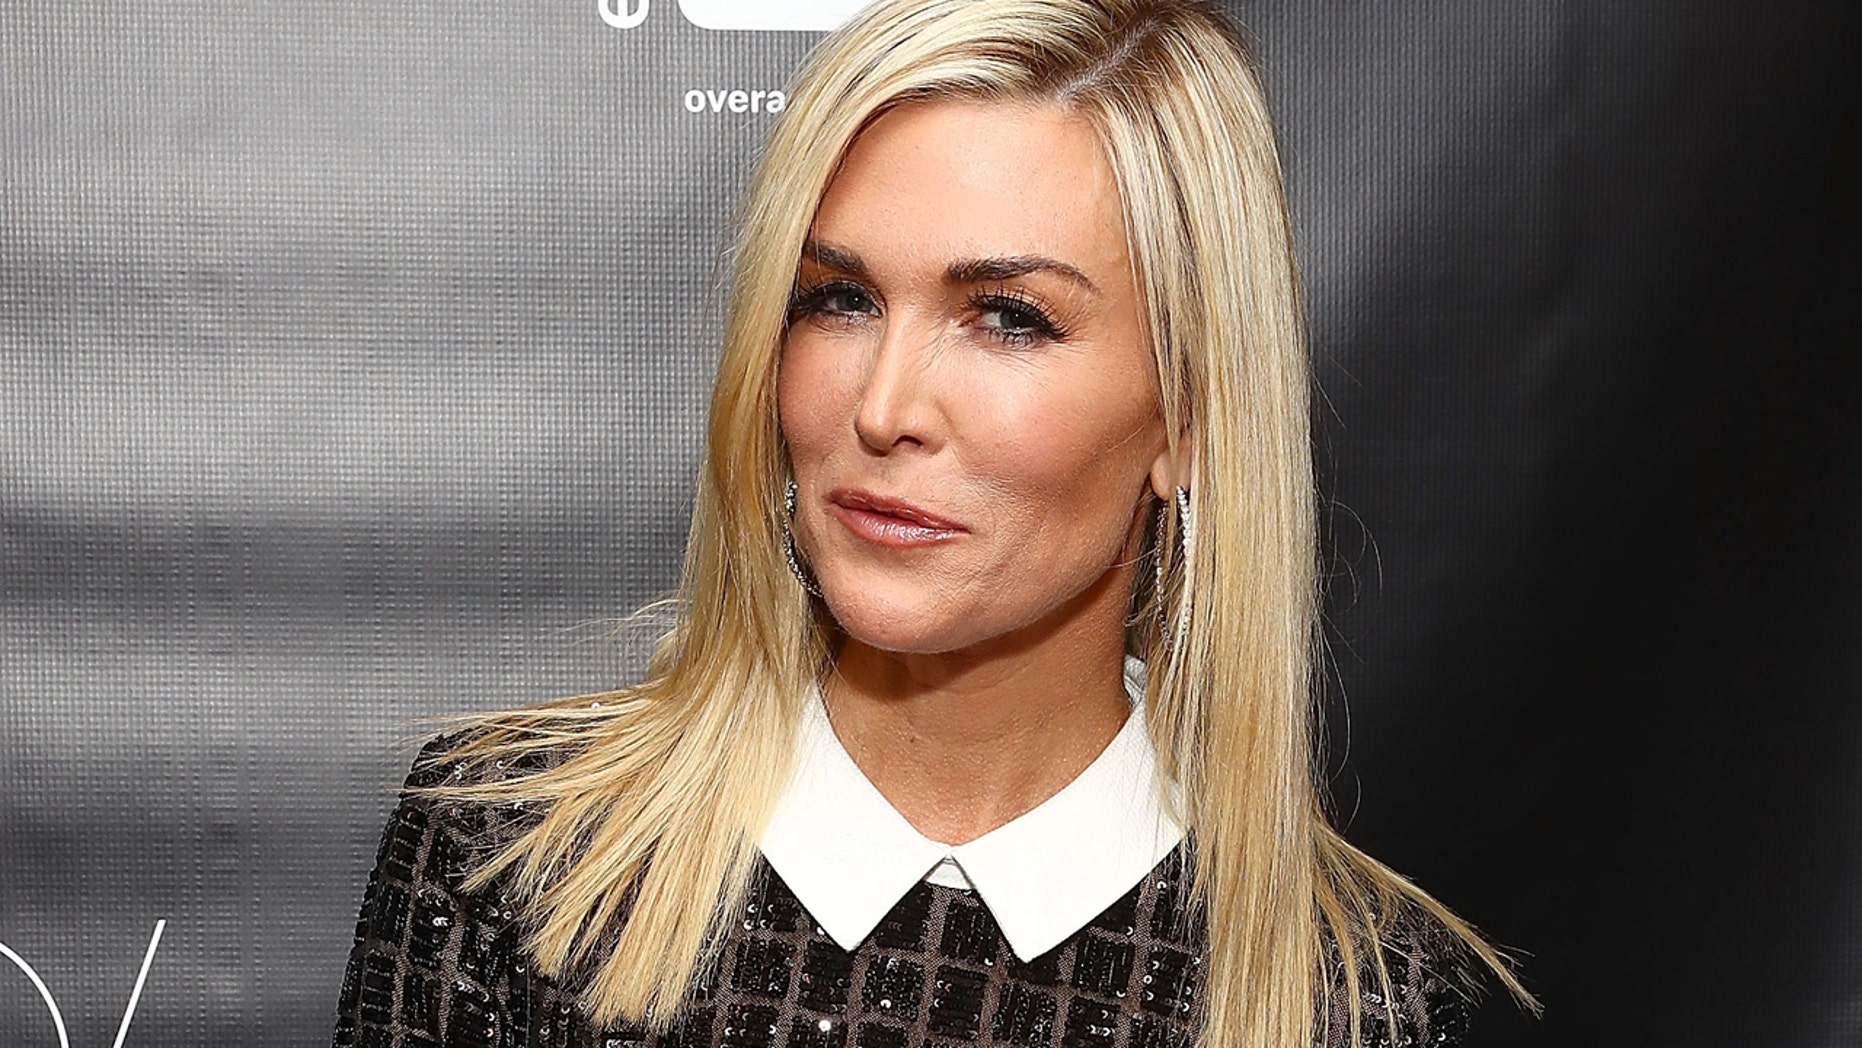 NEW YORK, NY - APRIL 04: Tinsley Mortimer attends the Real Housewives of New York Season 10 premiere celebration at LDV Hospitality's The Seville, produced by Talent Resources on April 4, 2018 in New York City. (Photo by Astrid Stawiarz/Getty Images for Talent Resources)